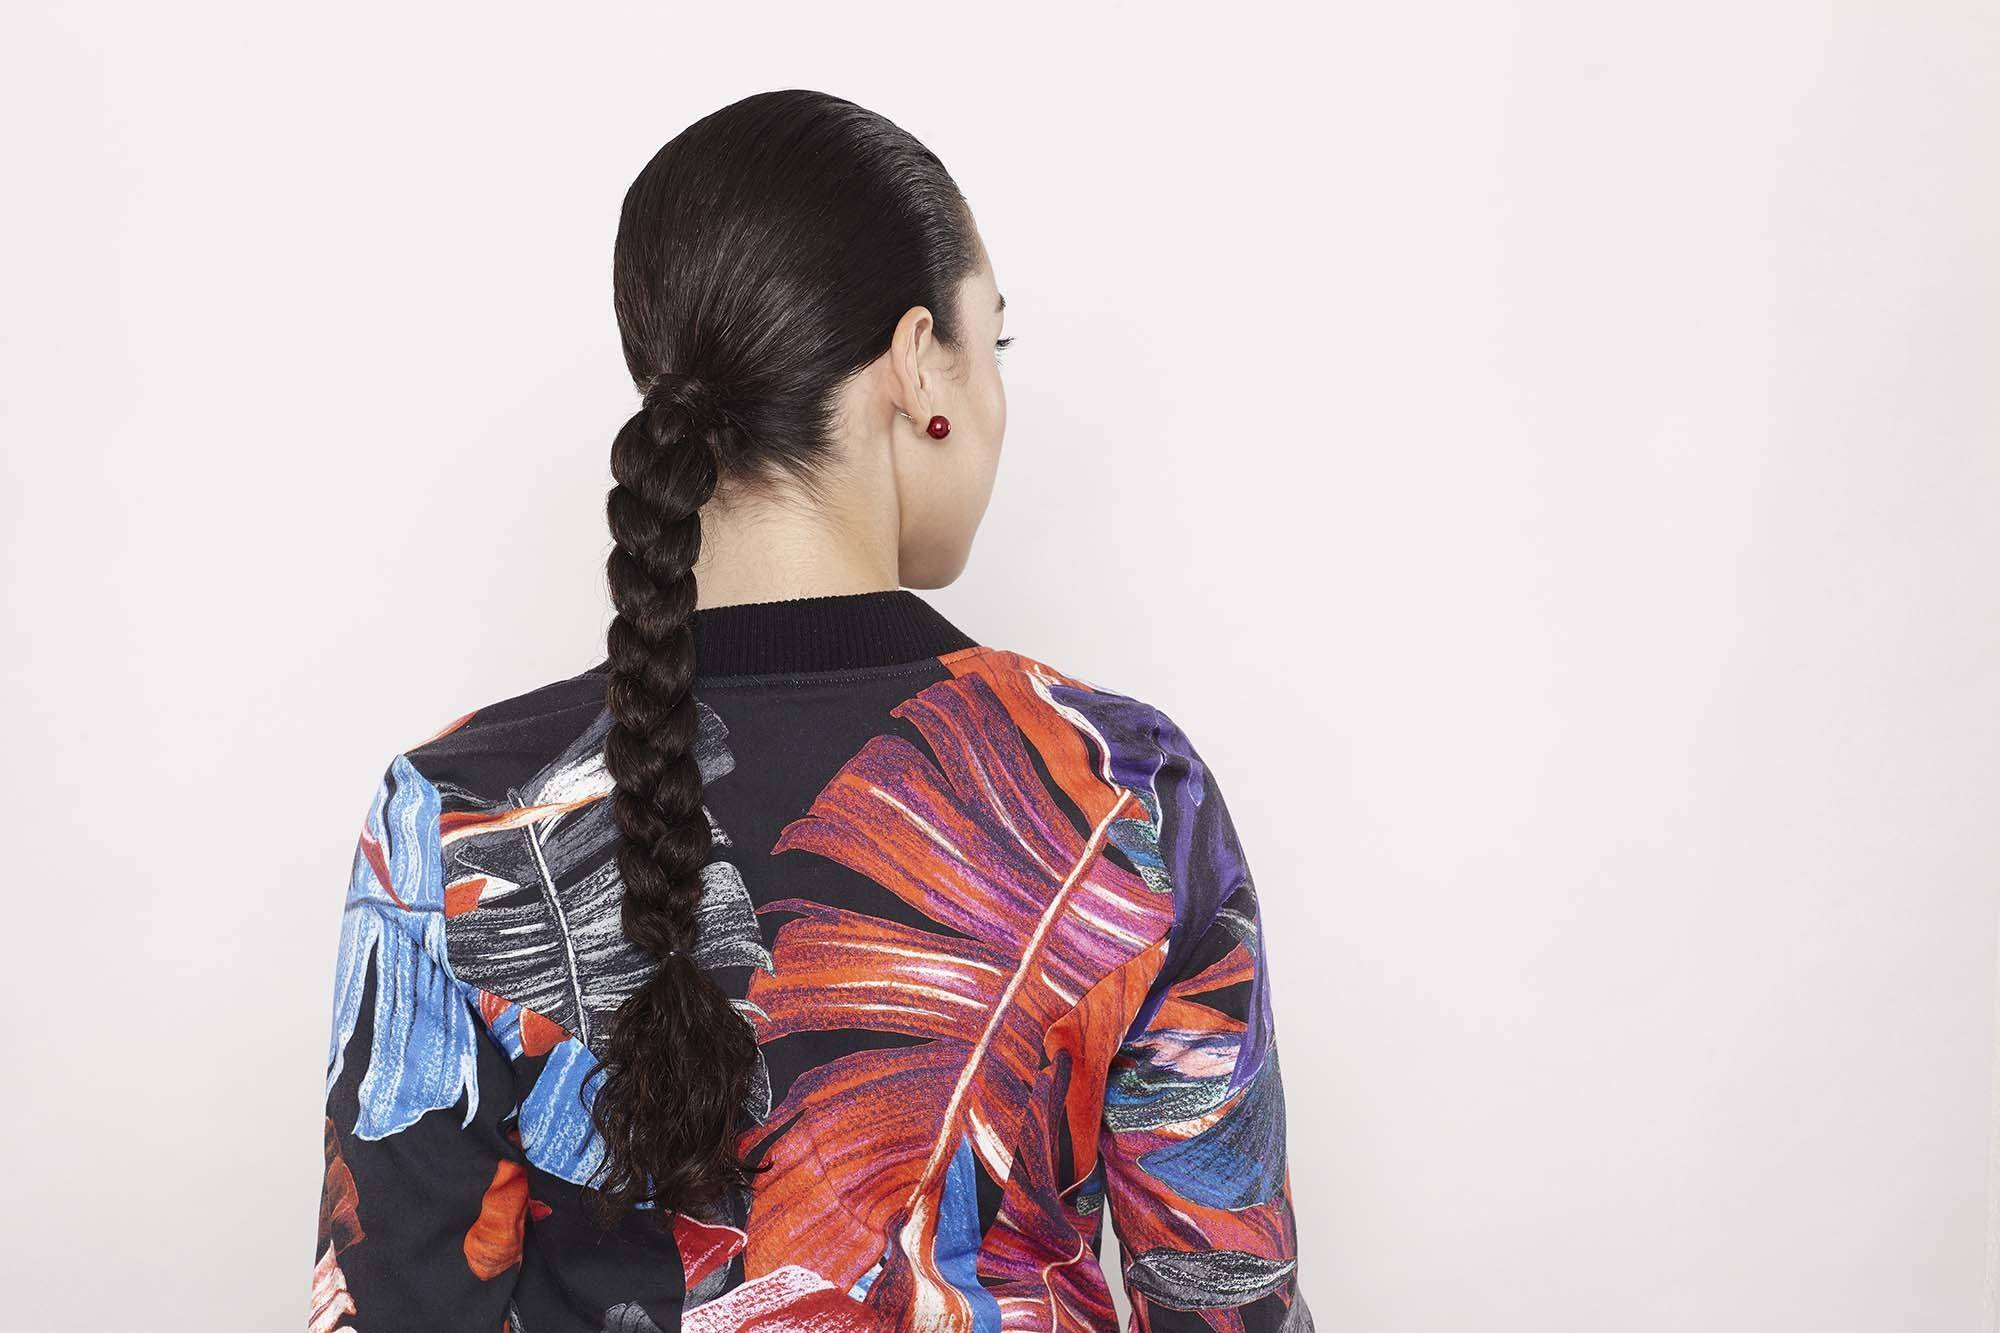 close up shot of woman with sporty braided hairstyle, wearing floral gym clothing and posing